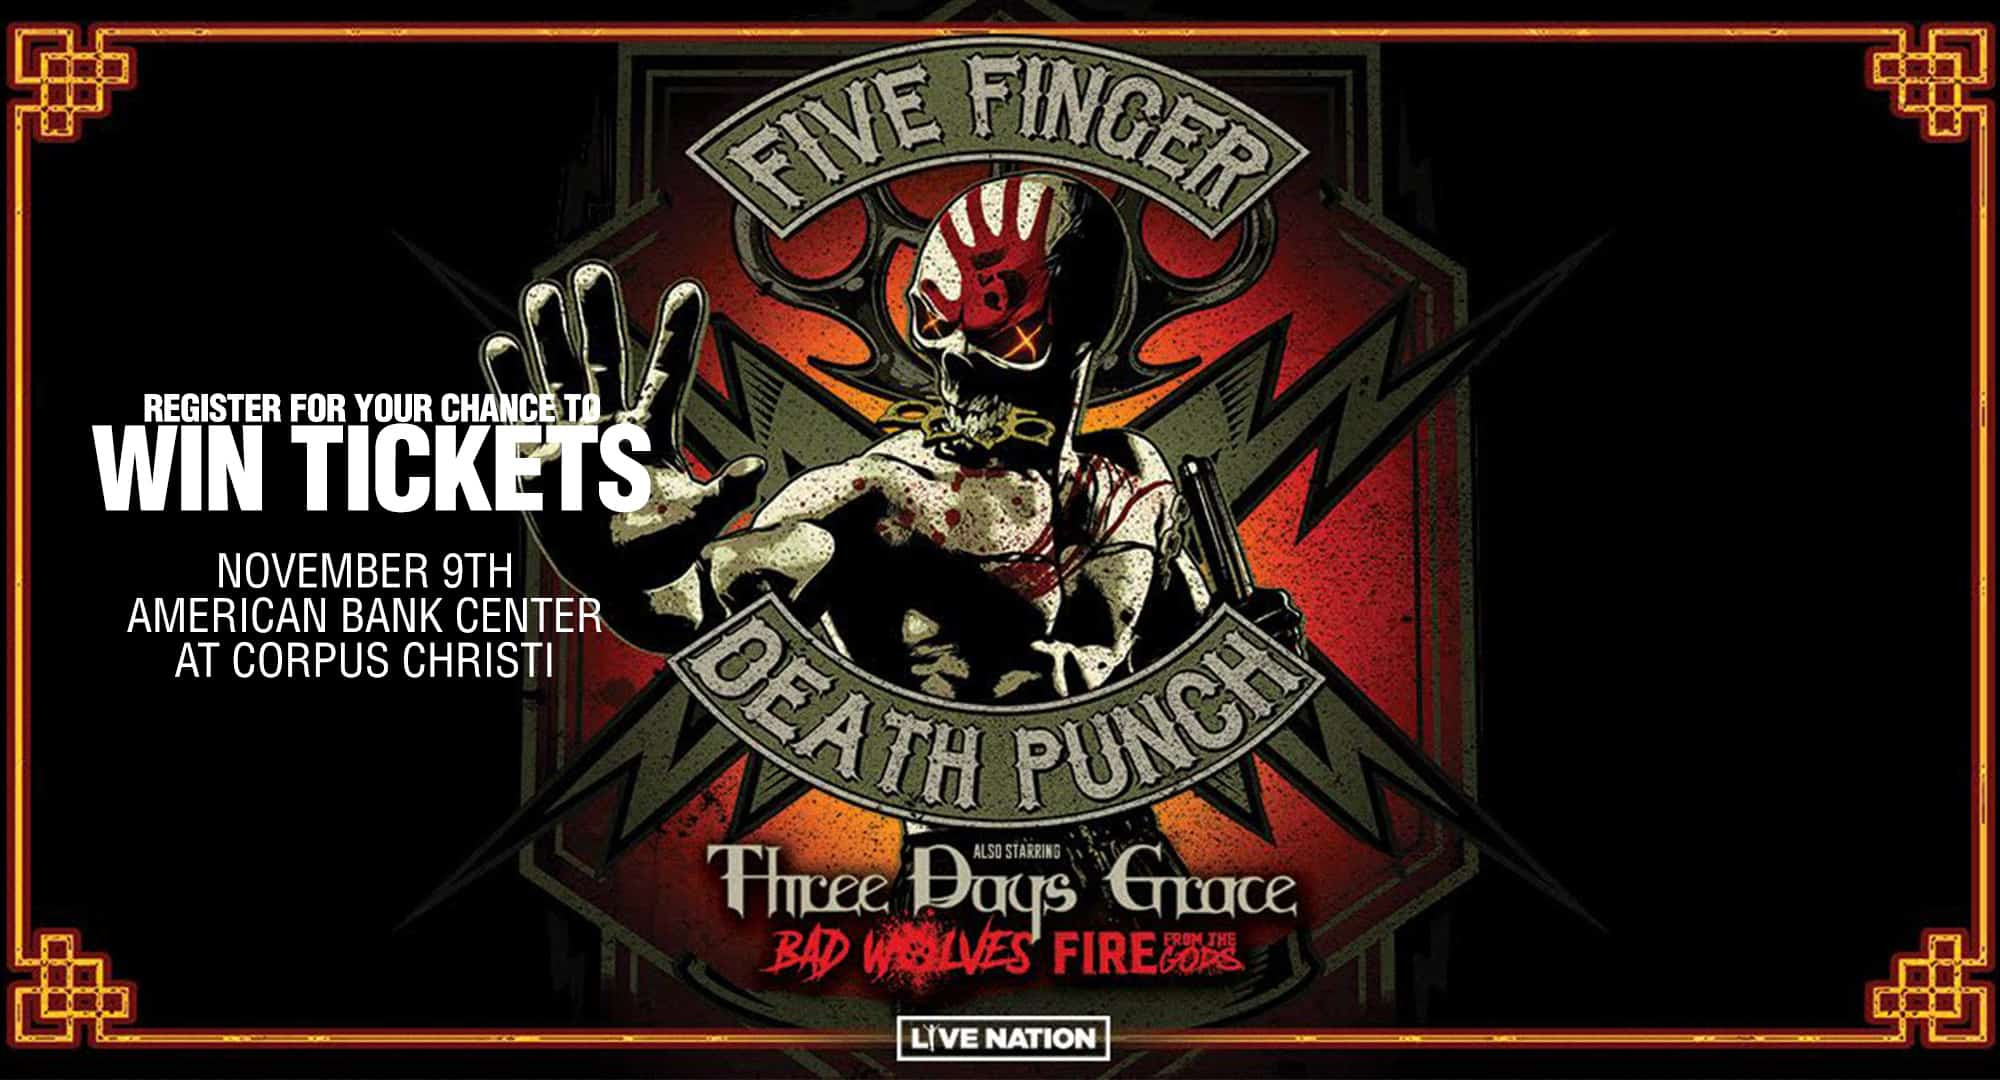 Register for your chance to win tickets to See Five Finger Death Punch